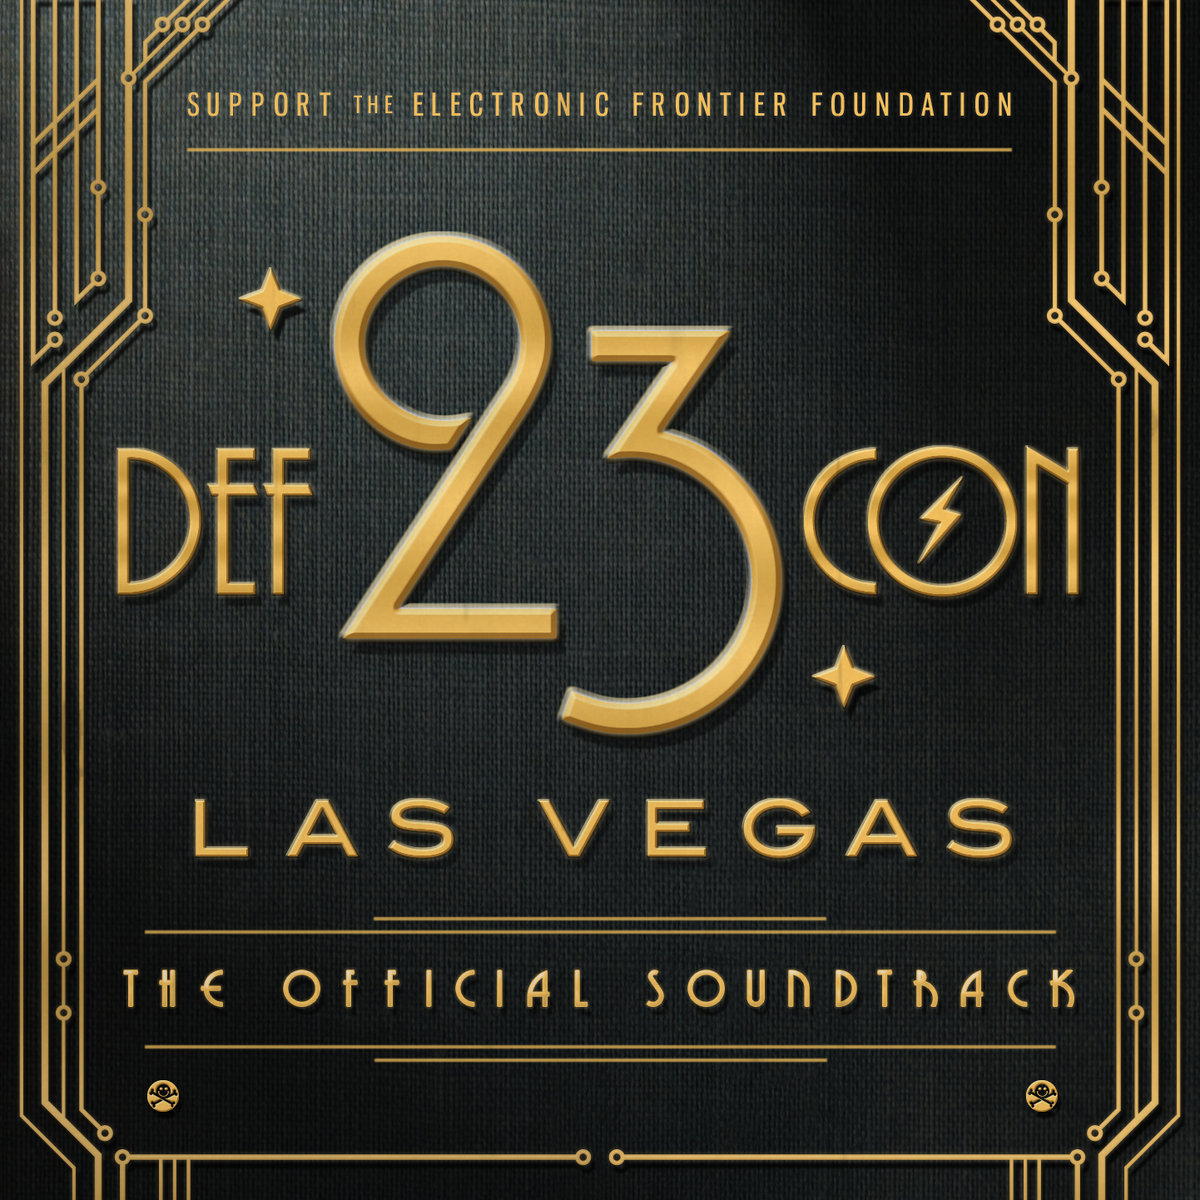 Zebbler Encanti Experience & LOEJ feat. Stephen Webber - G2G @ 'DEF CON 23: The Official Soundtrack' album (bass, charity)